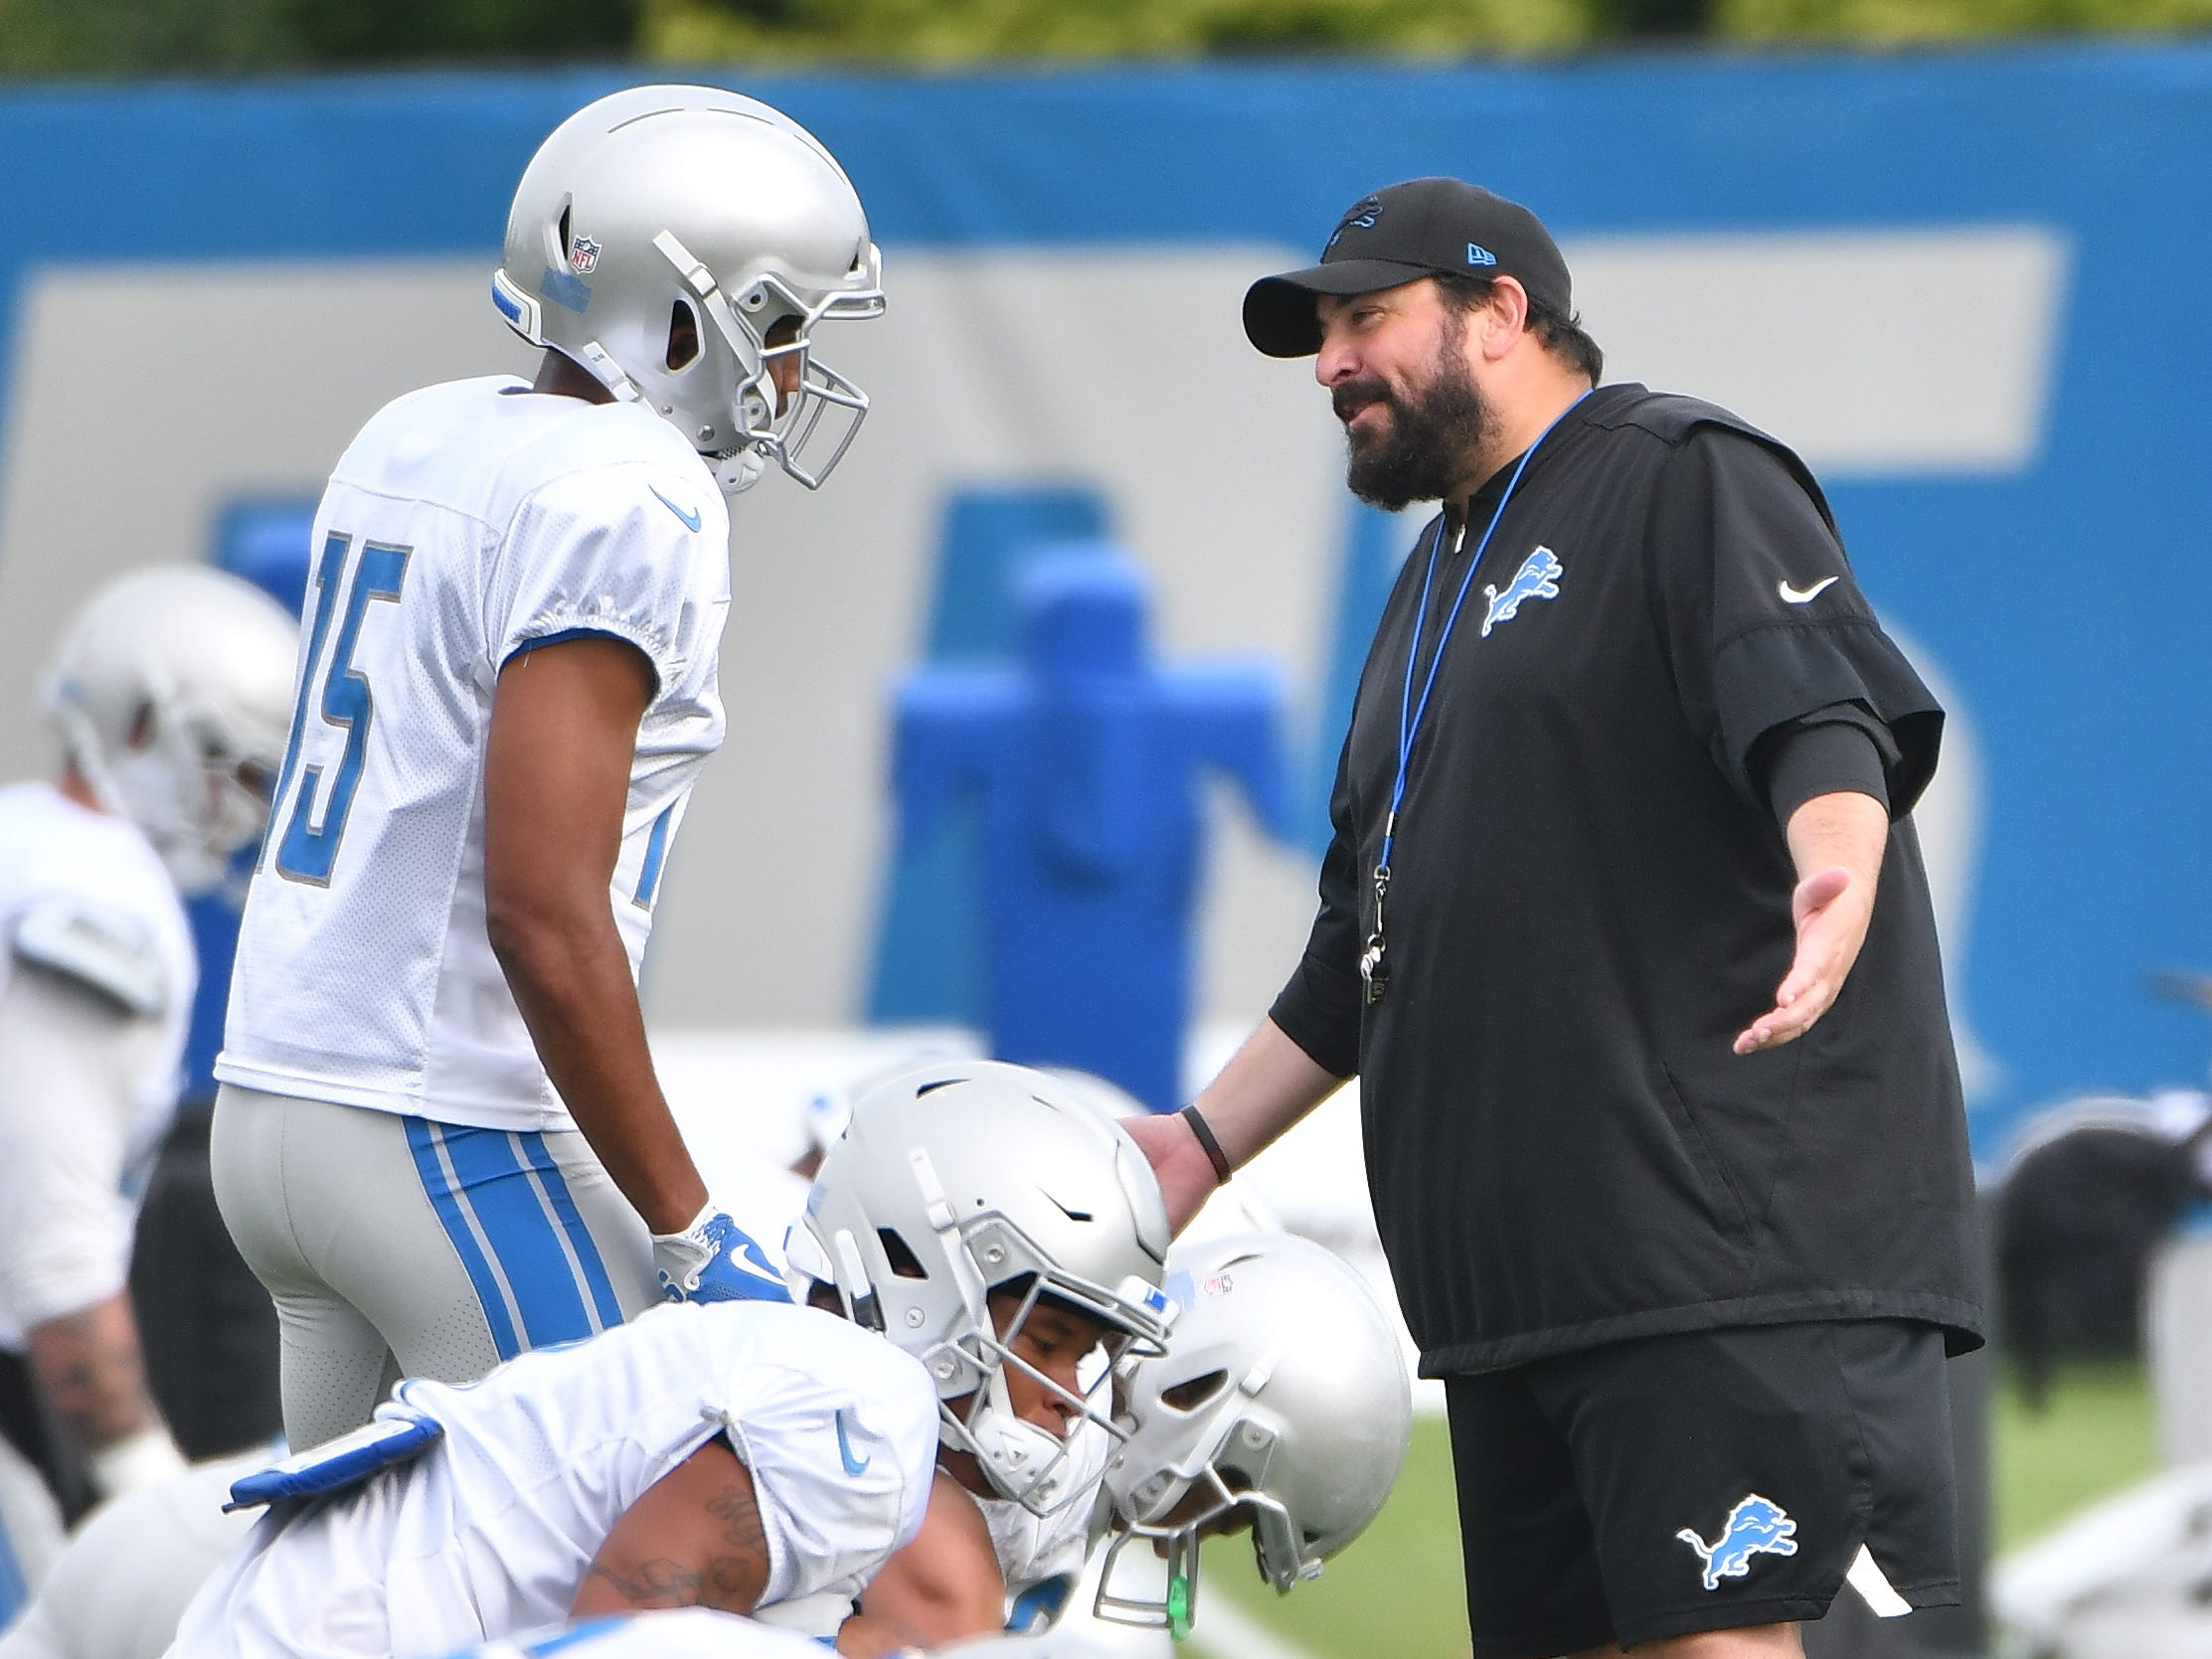 Lions head coach Matt Patricia chats wide receiver Golden Tate as he and the team go through stretching early Wednesday morning at training camp.